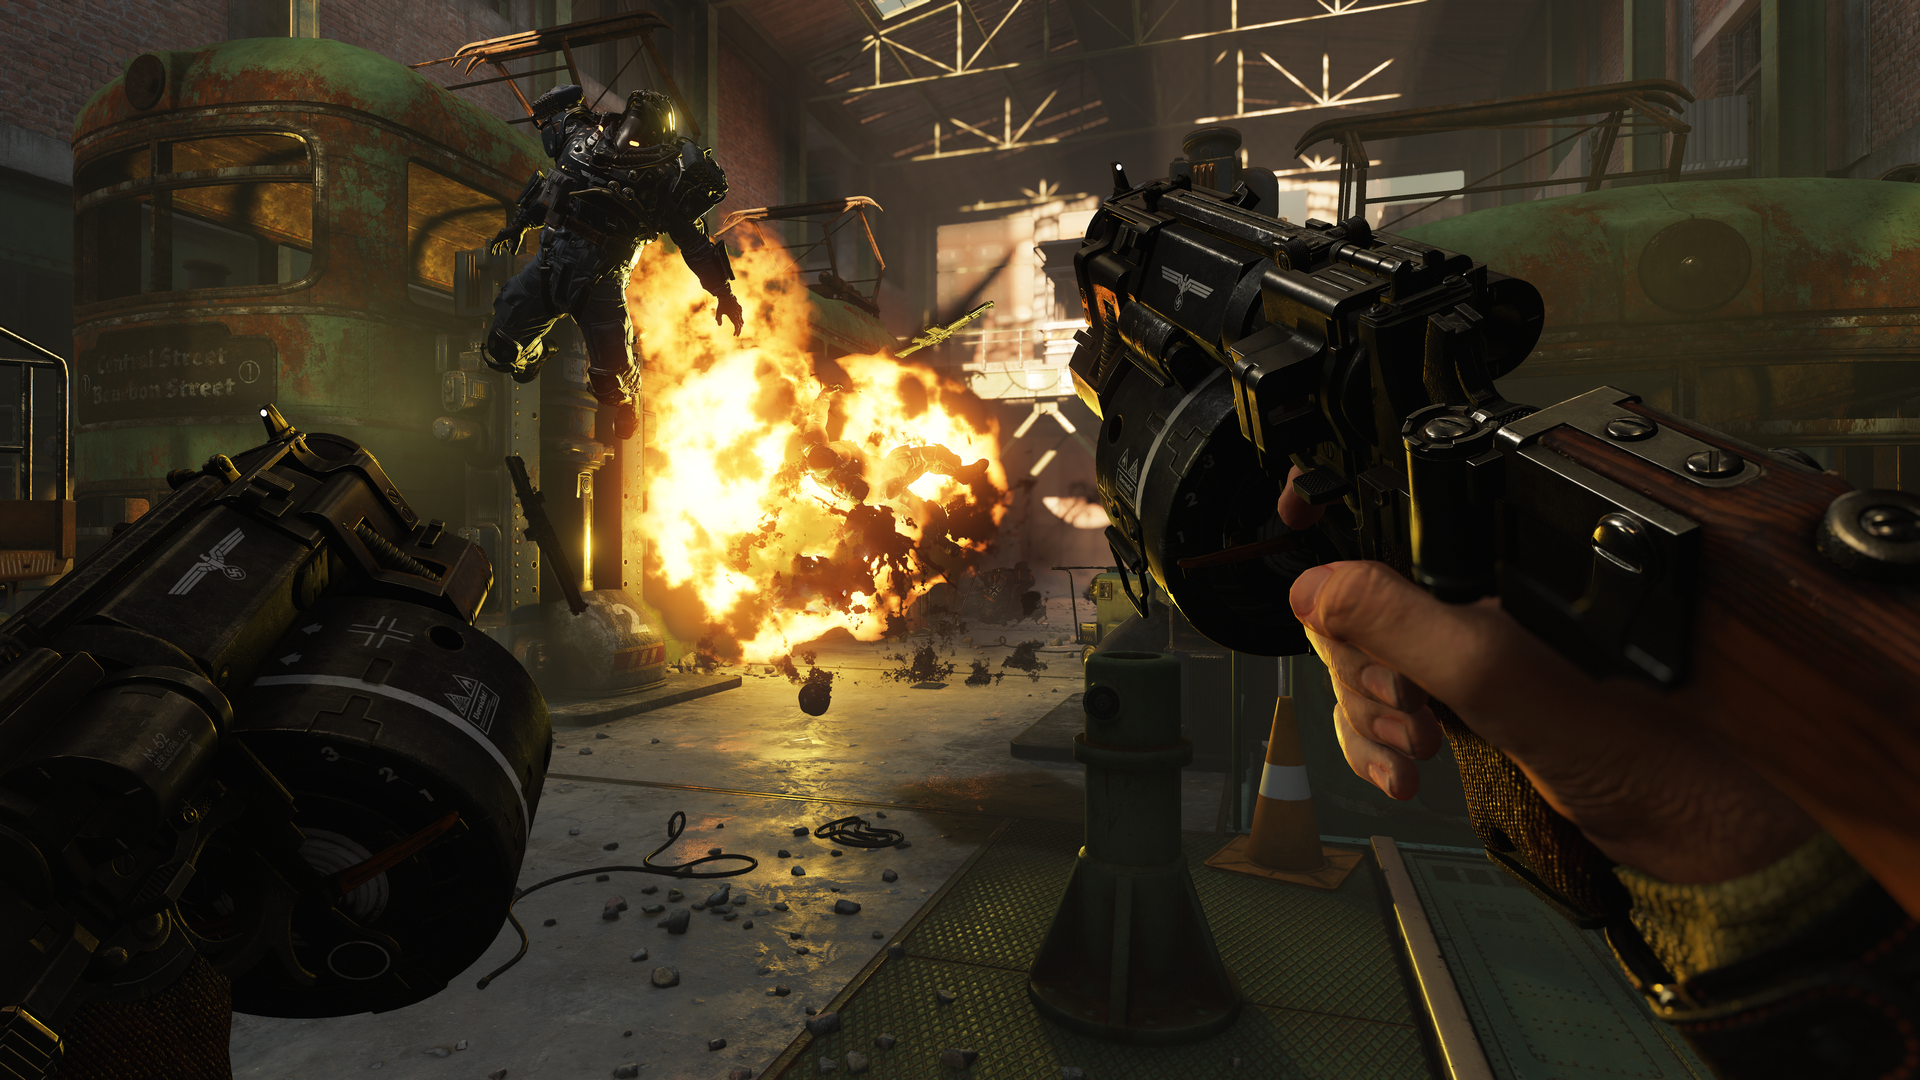 wolfenstein_2_screenshot_2